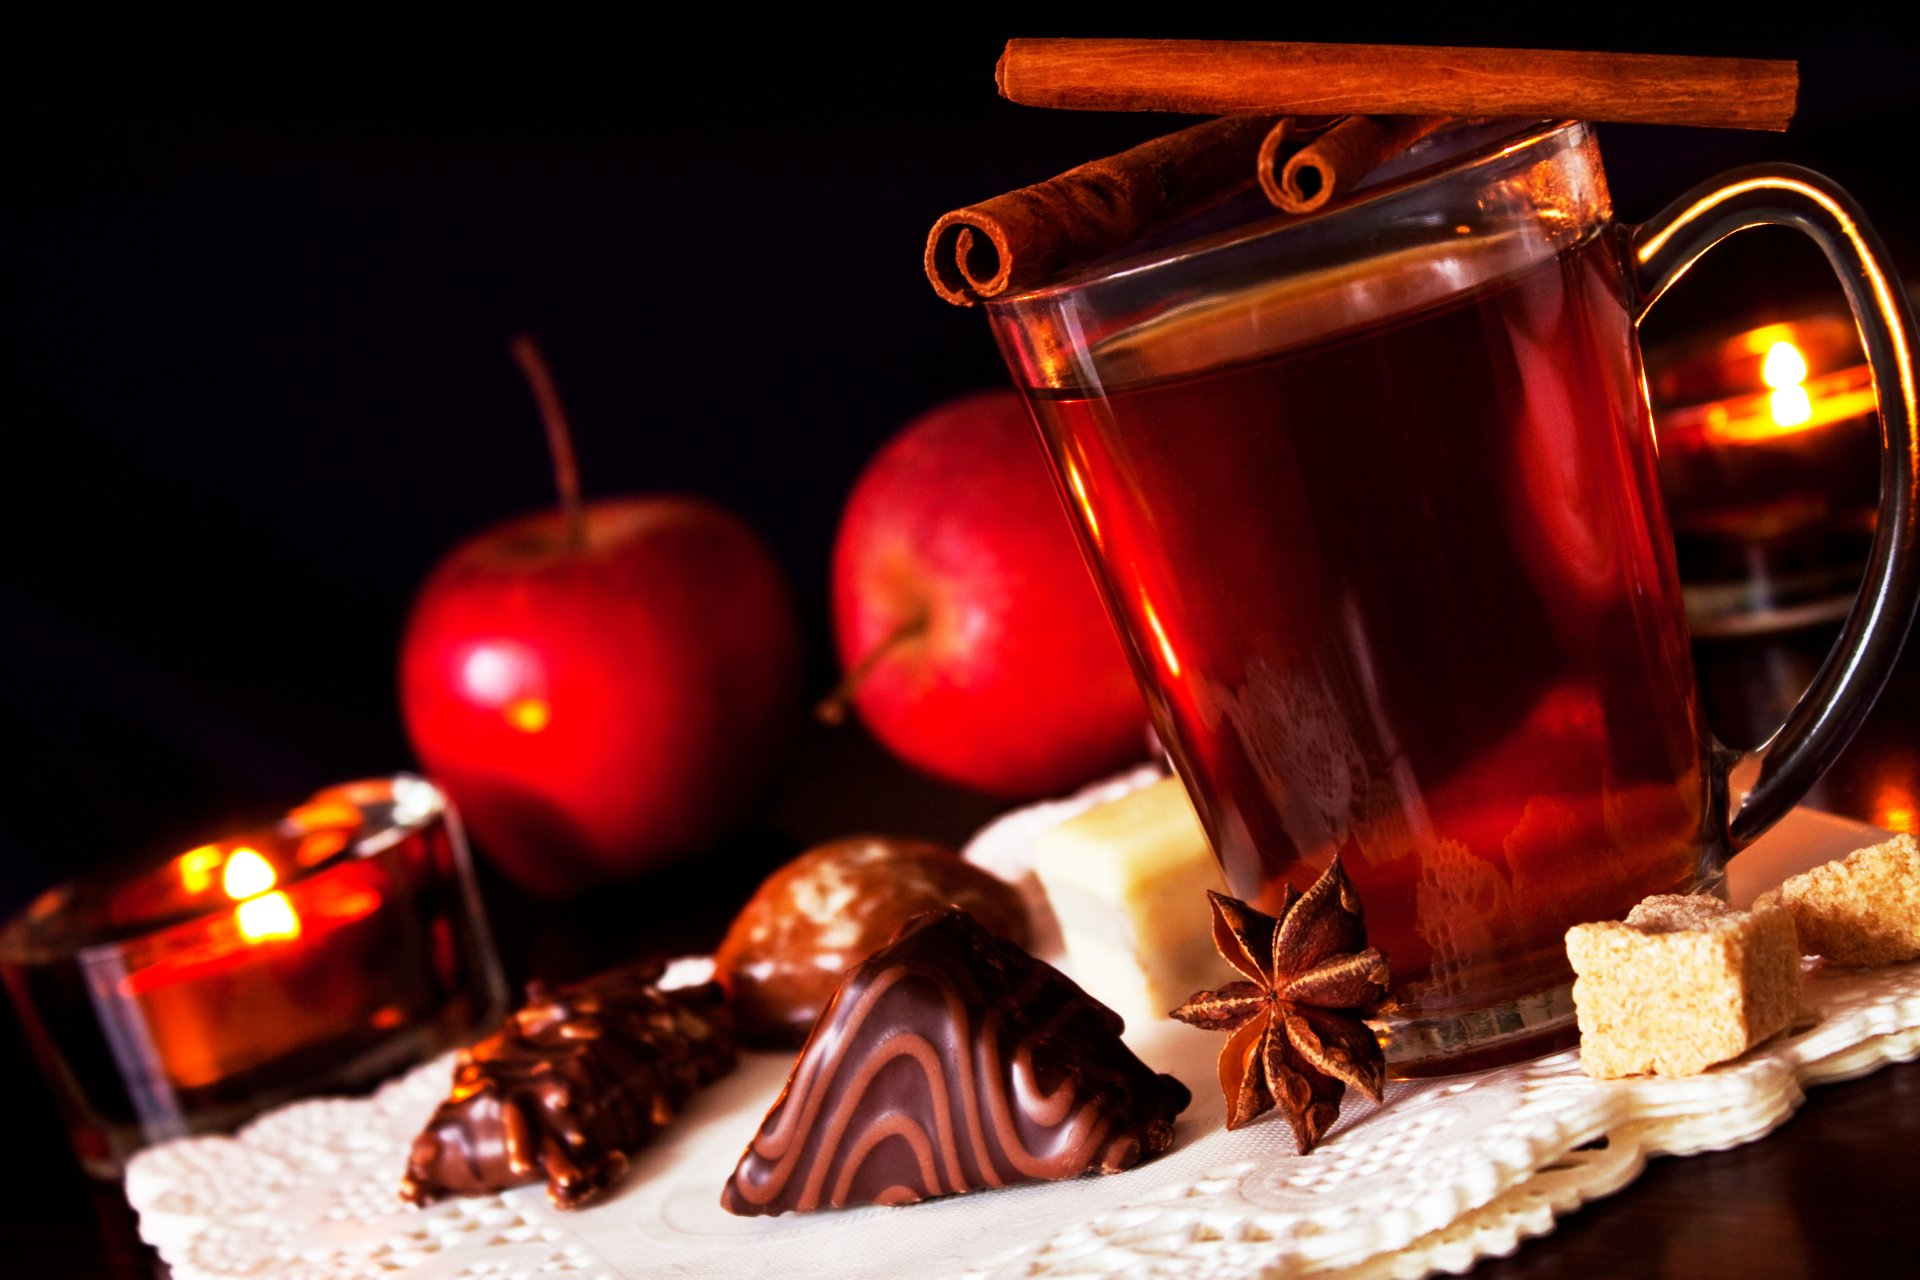 Food - Spiced Cider  Christmas Cinnamon Apple Candle Wallpaper